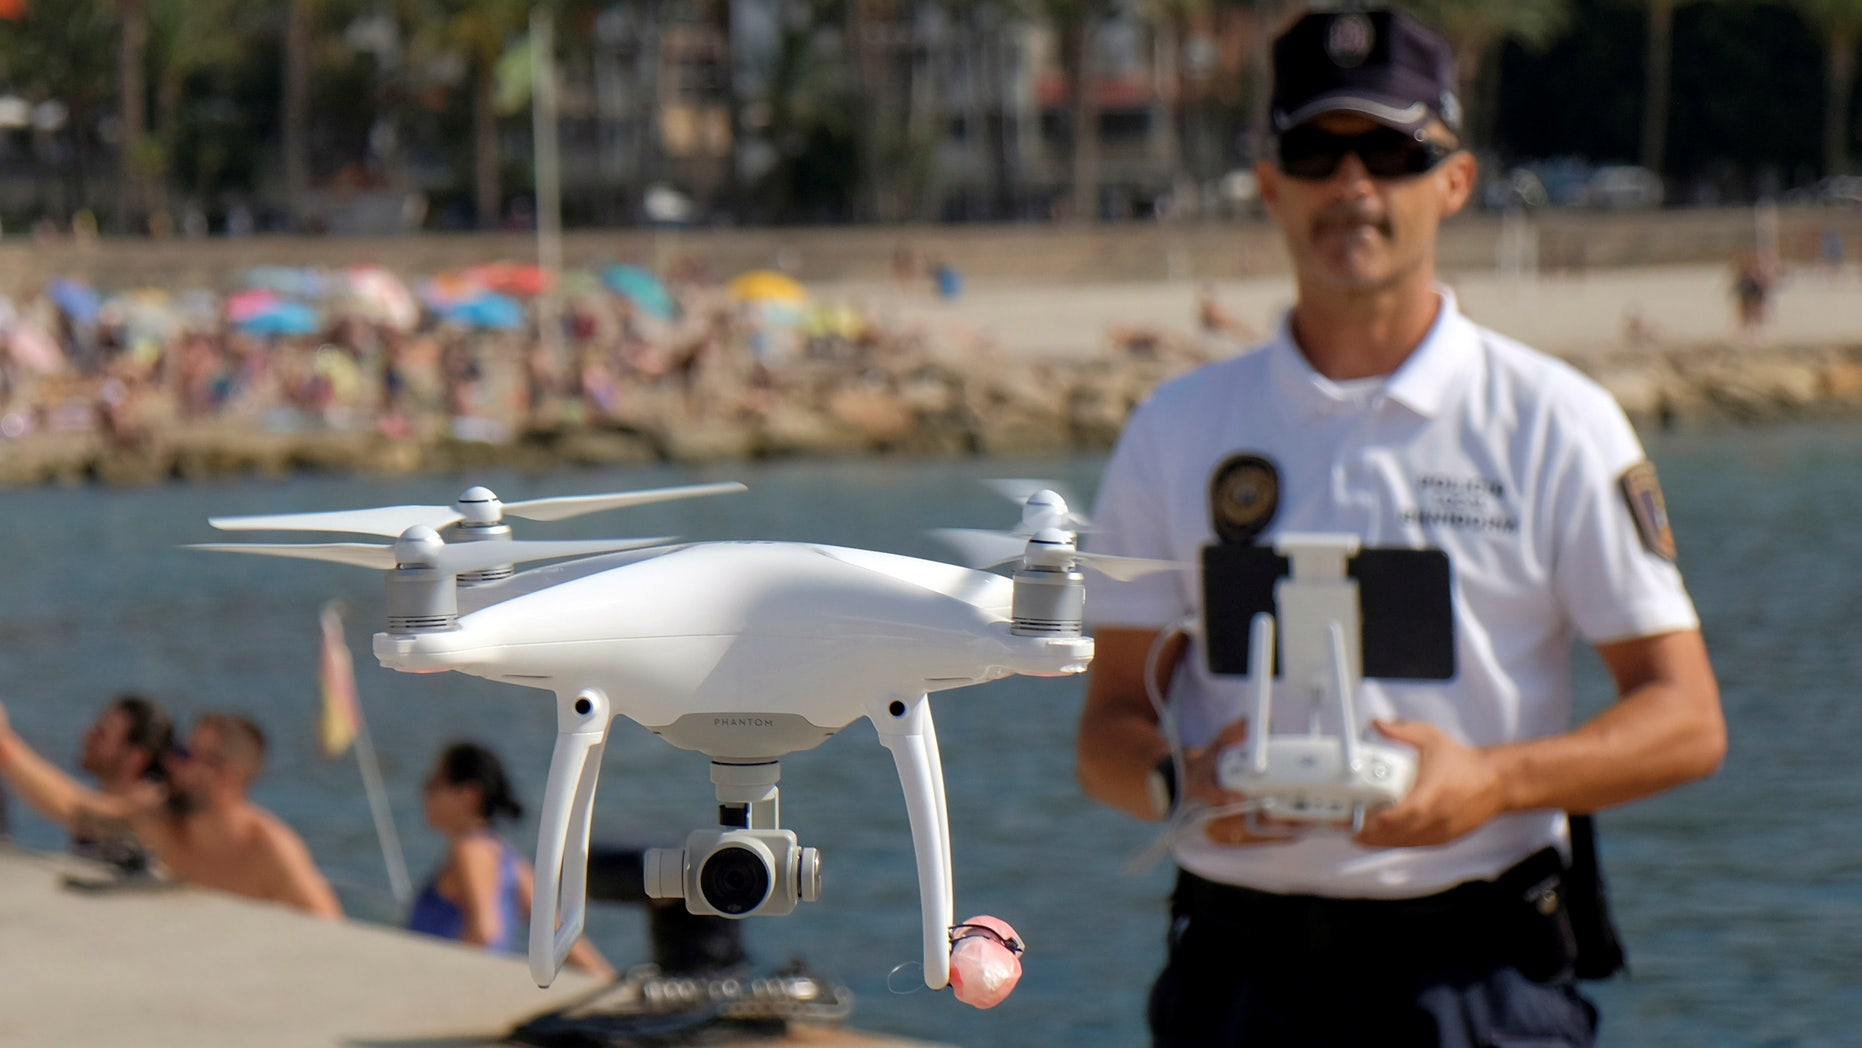 File photo: Local police officer Agustin Mirete controls a drone equipped with a camera used for surveillance tasks in the Poniente beach at the eastern costal town of Benidorm, Spain, August 18, 2016. (REUTERS/Heino Kalis)